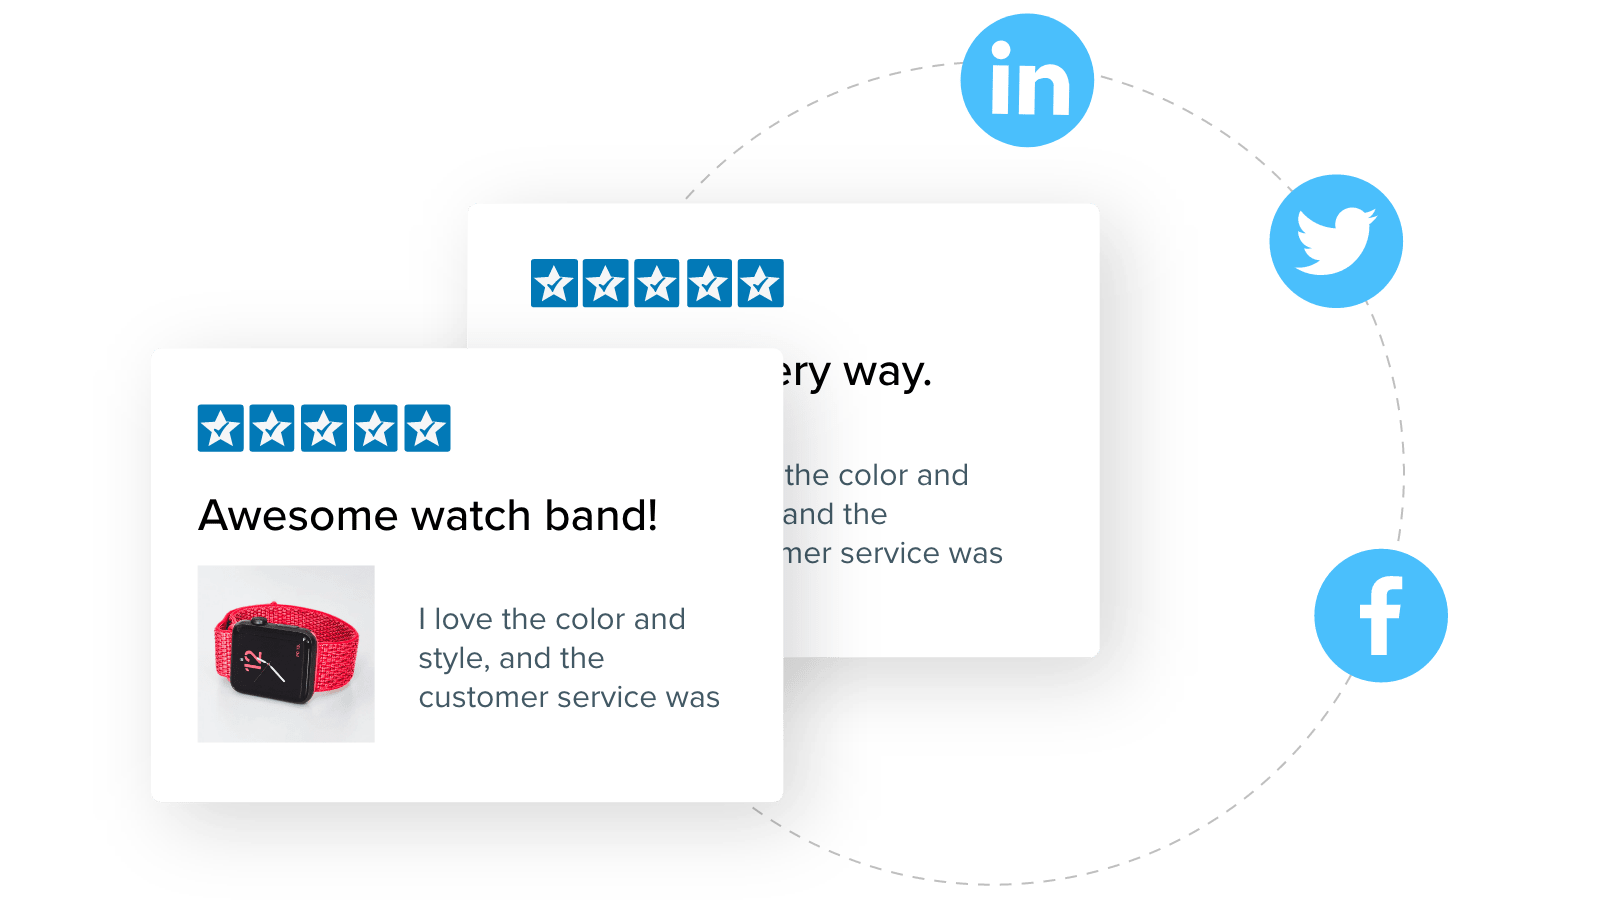 Share reviews to social media with 1-click